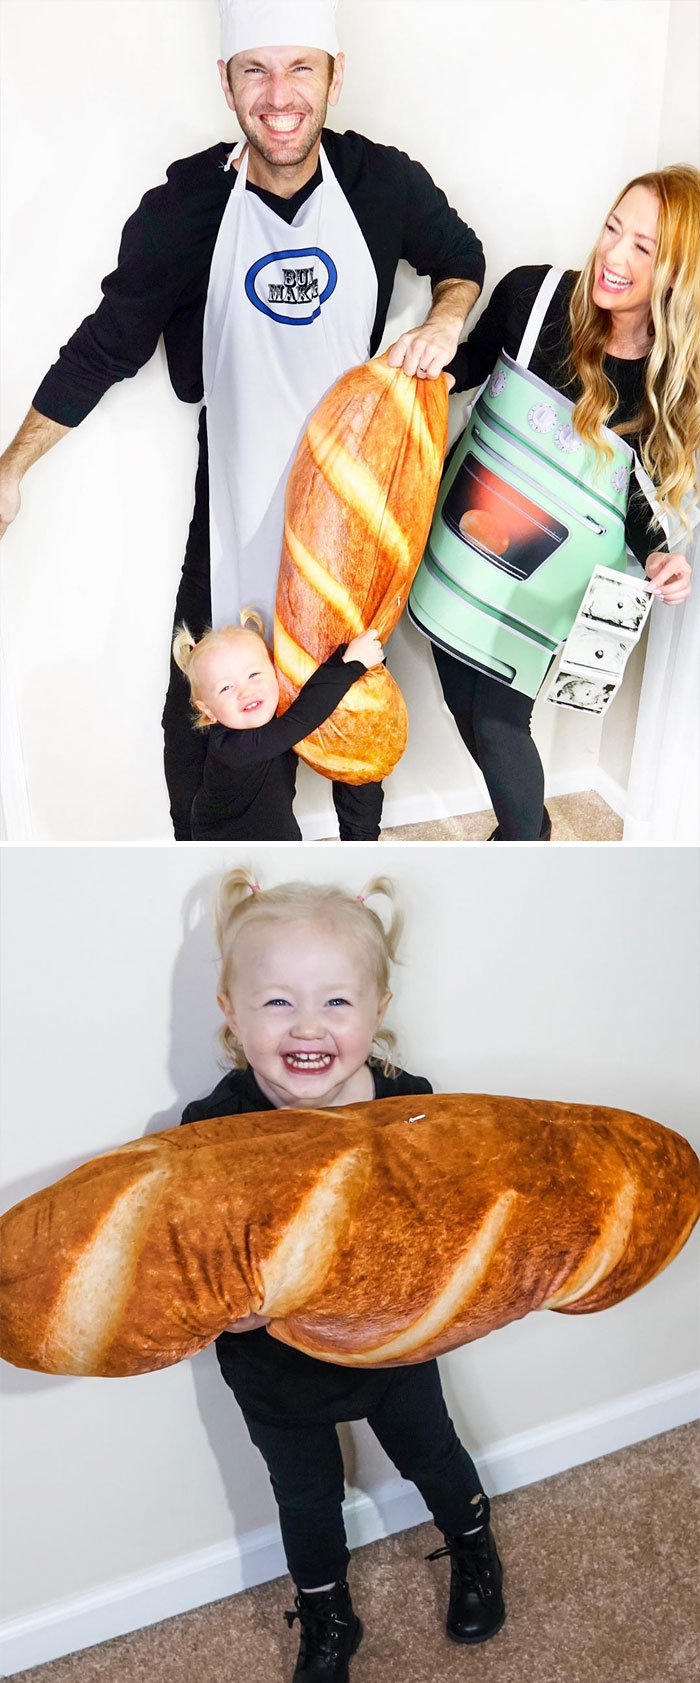 Jamie Otis And Her Family Dressed As A Baker, Bread Loaf, And Oven With A Bun In It